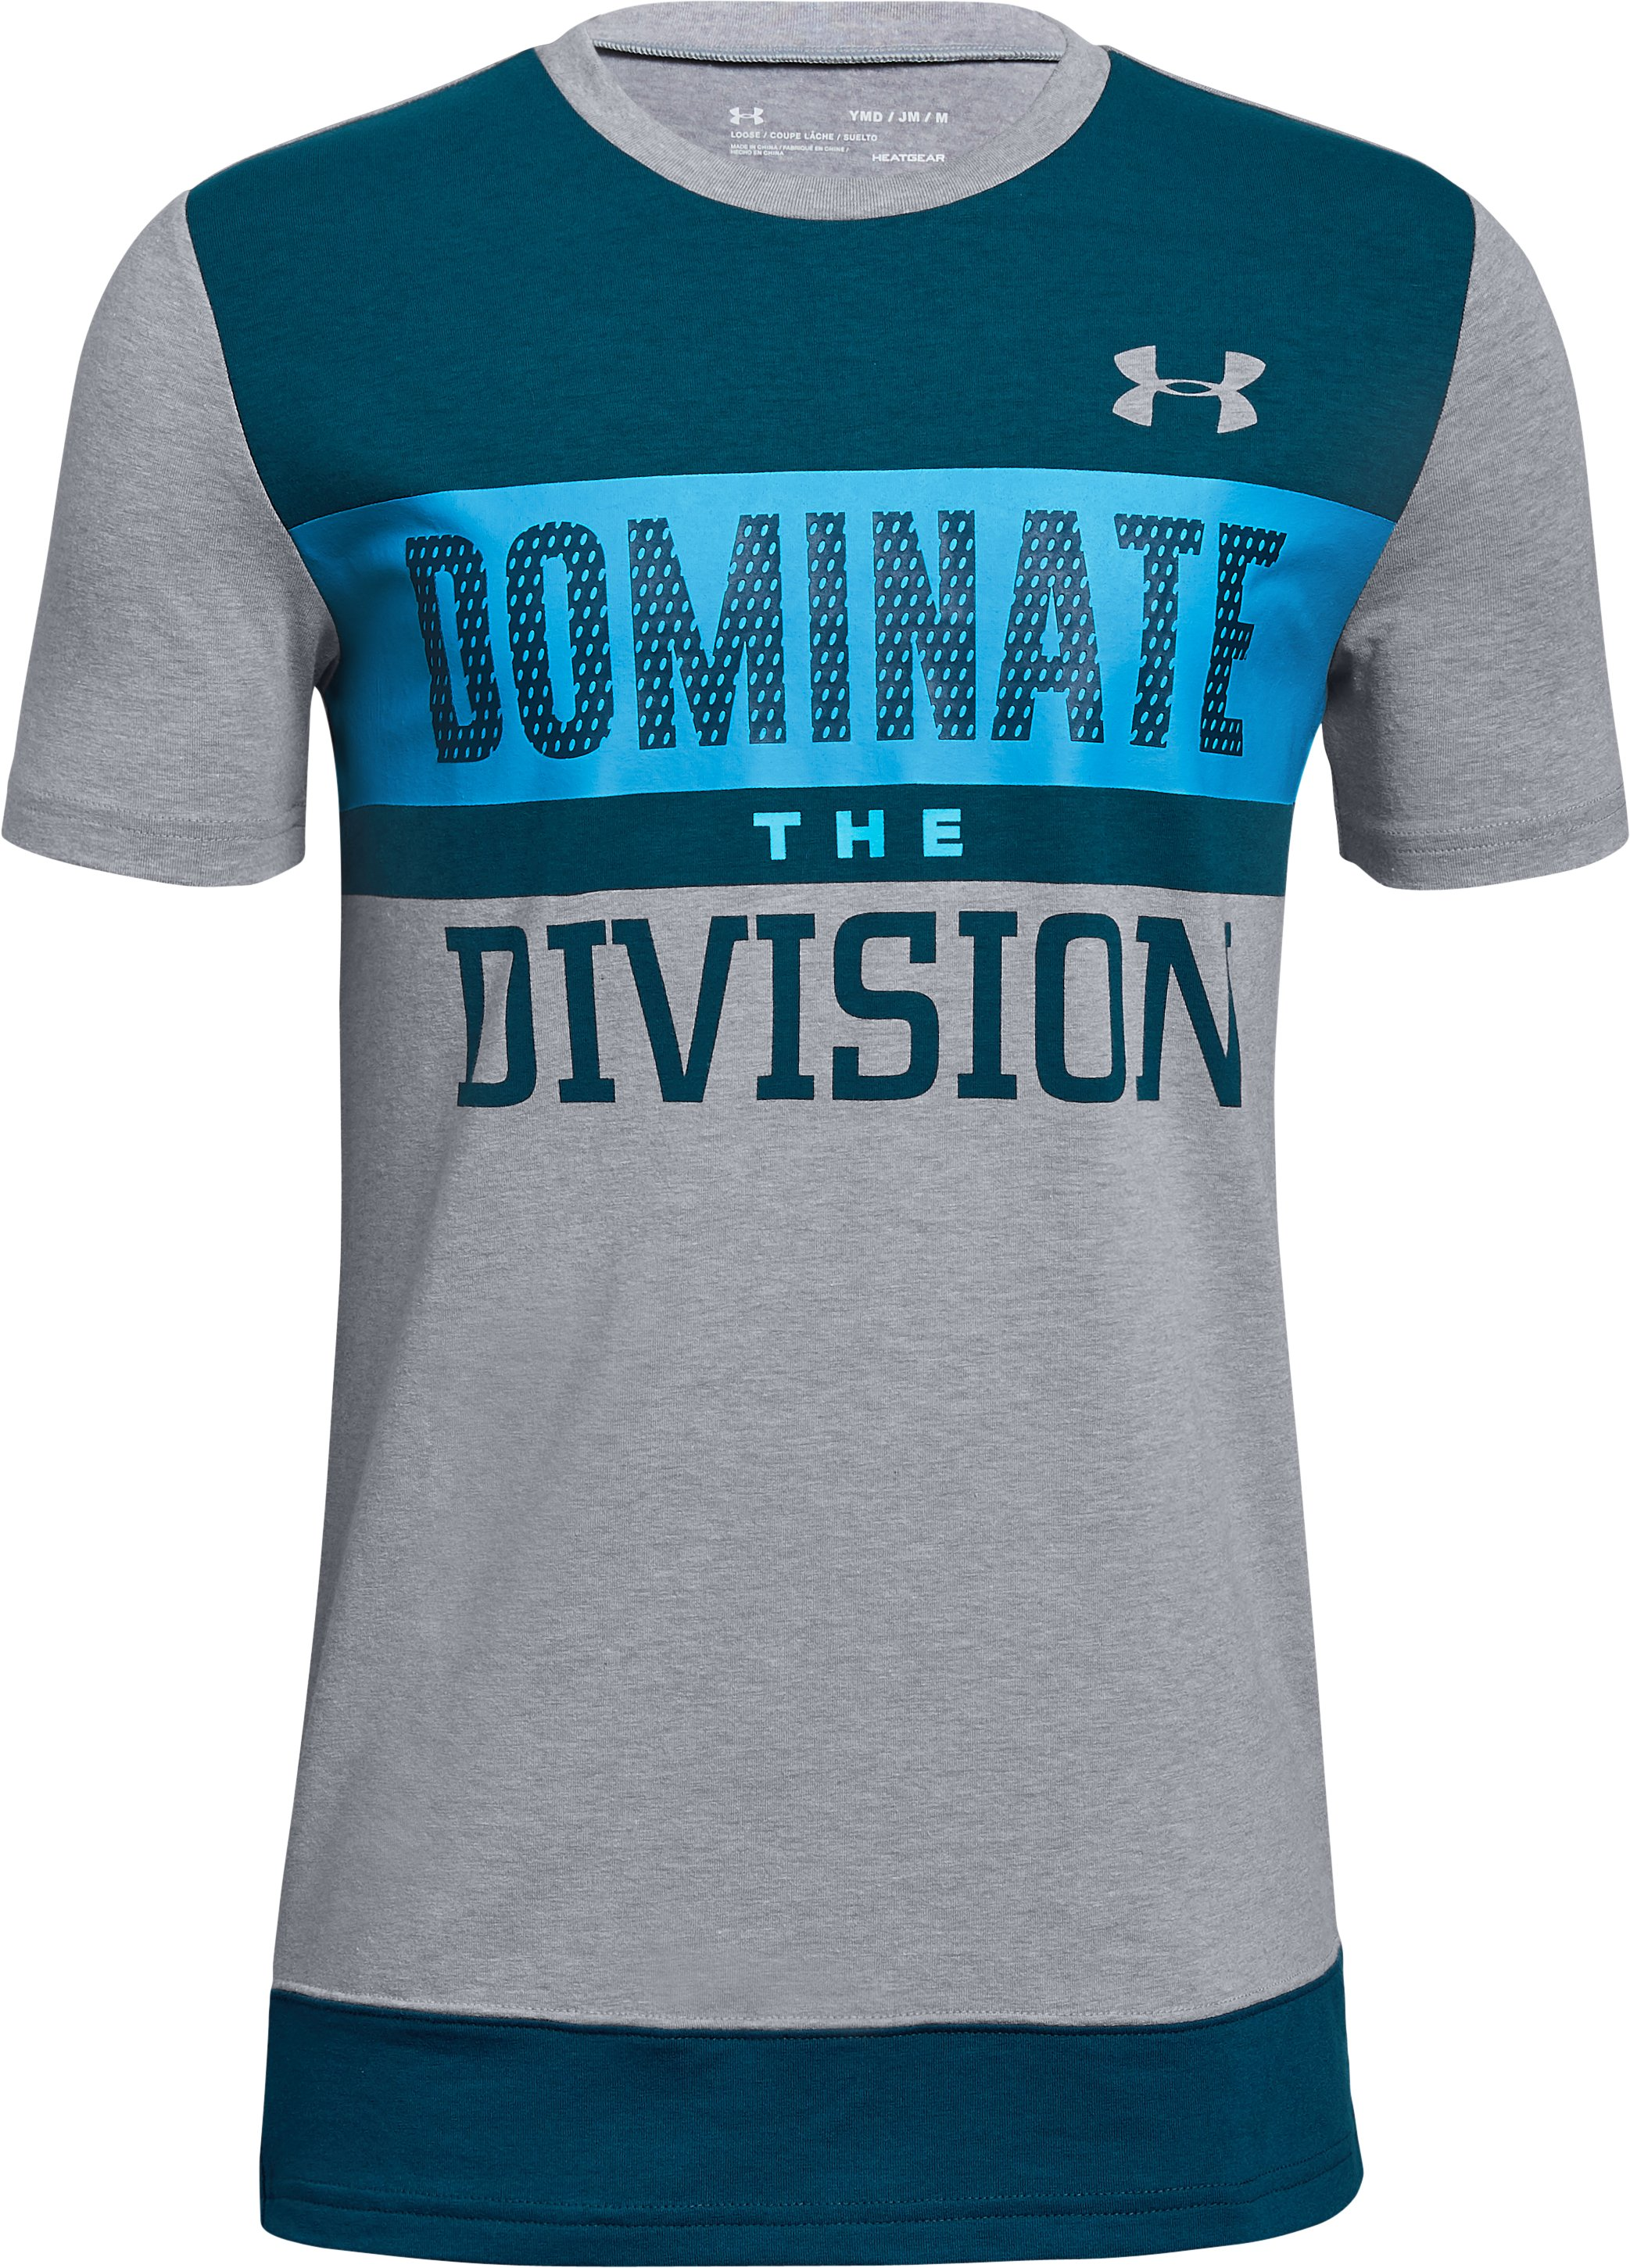 Boys' UA Dominate The Division Short Sleeve T-Shirt, STEEL LIGHT HEATHER